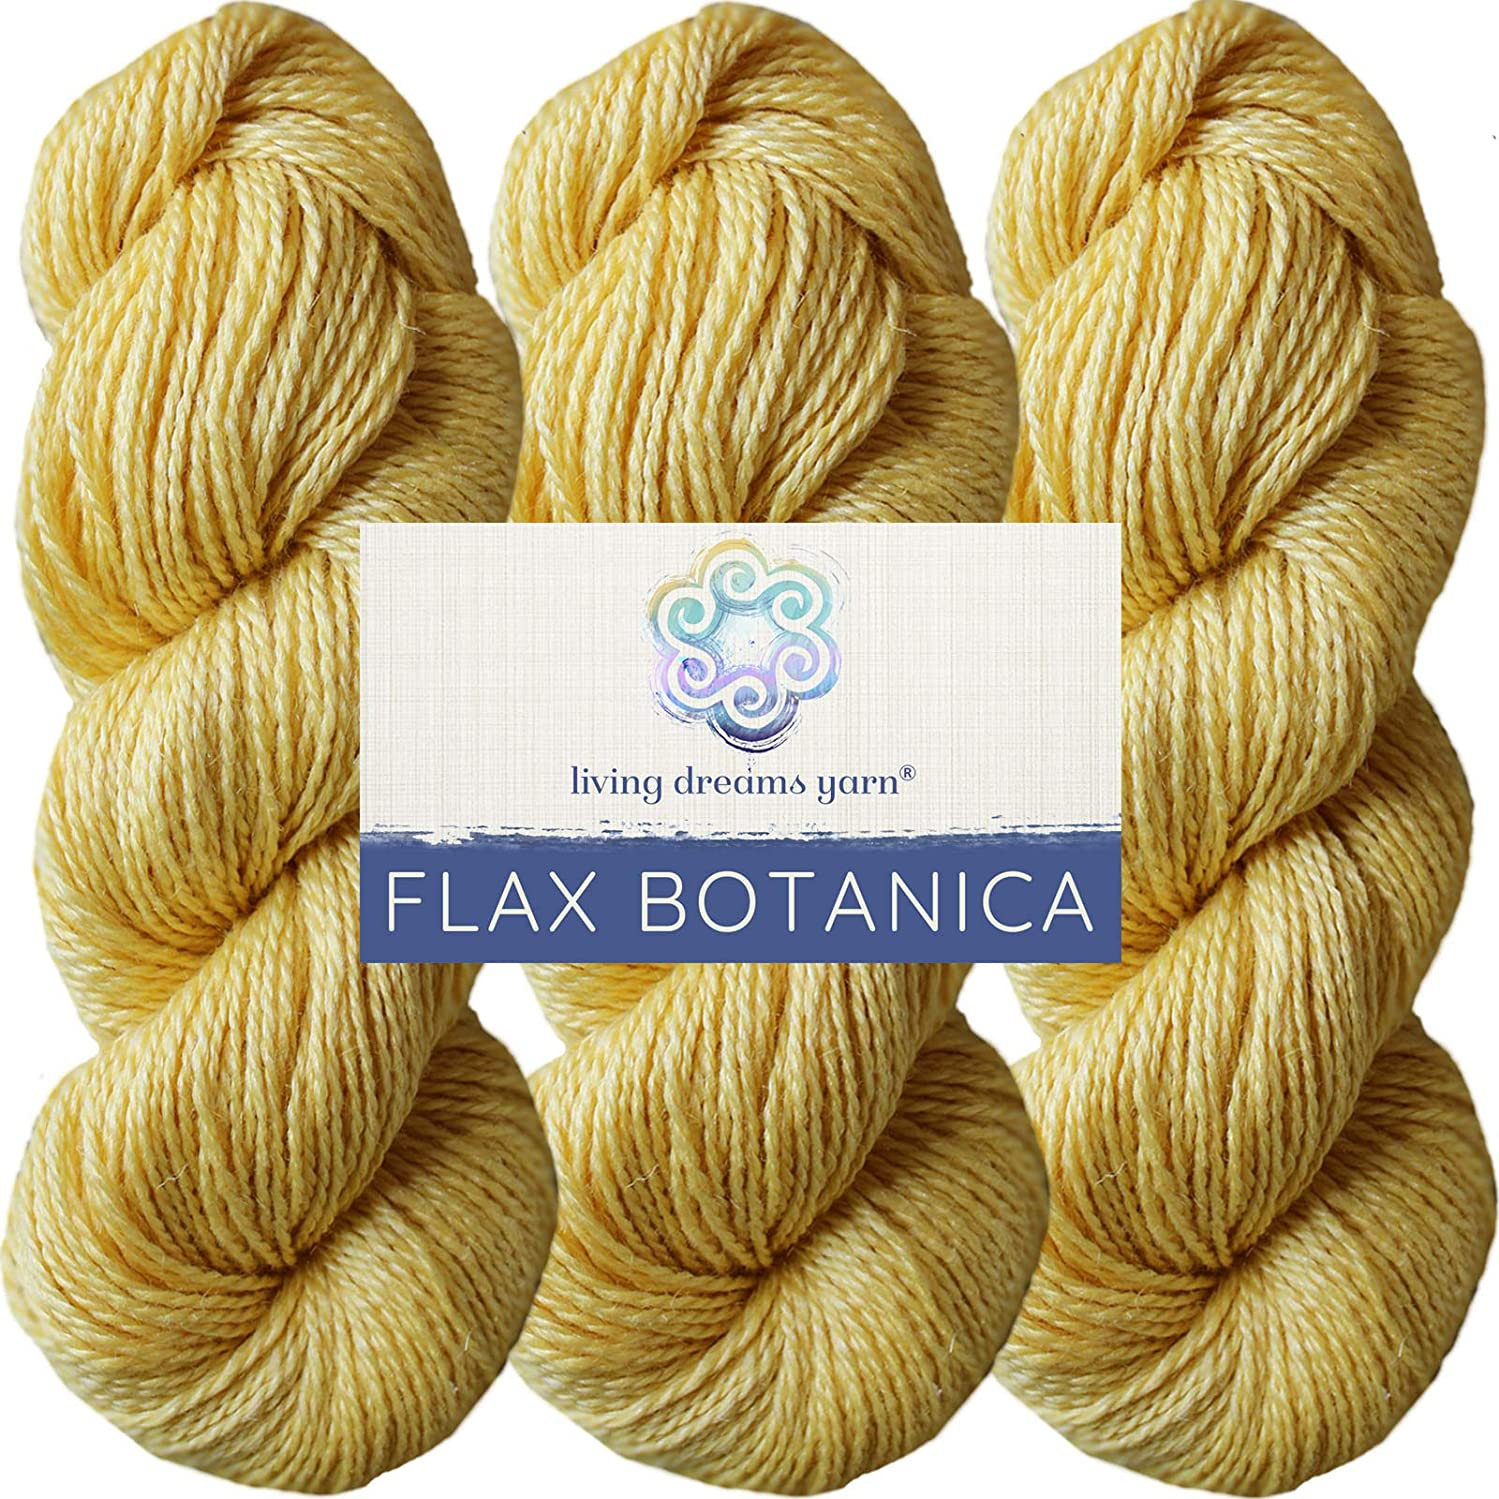 Living Dreams Flax Botanica DK Yarn. Elegant Merino Linen Silk. Cruelty Free & Responsibly Sourced. Pacific Northwest Handmade. Bulk Discount Pack, Maize